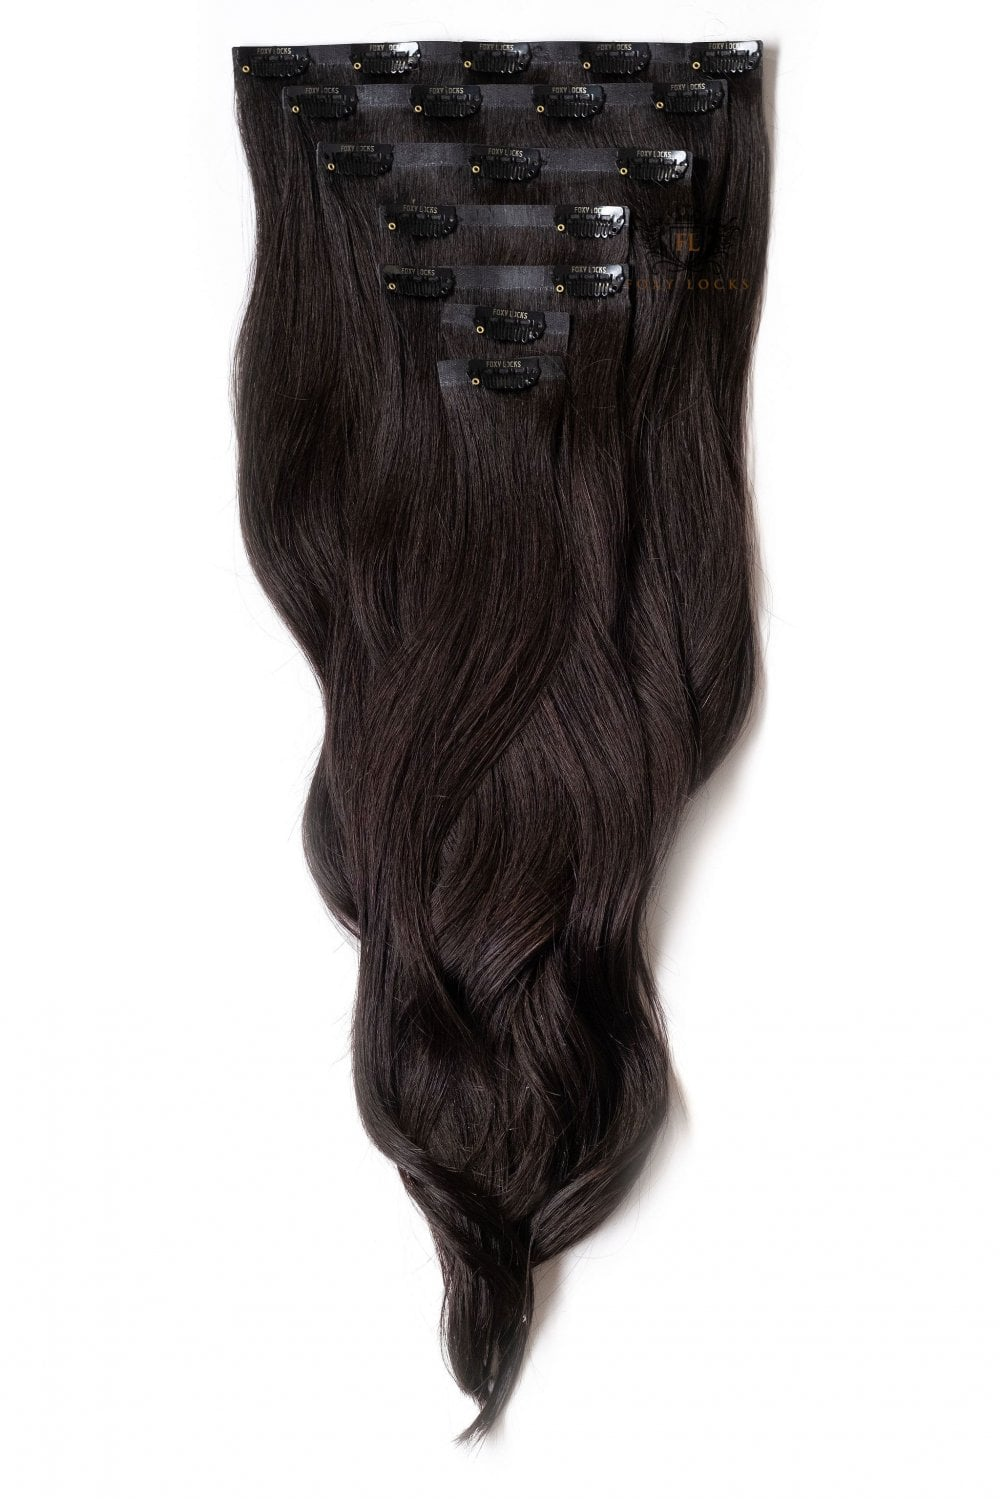 Brown Black Seamless Deluxe 20 Clip In Human Hair Extensions 165g